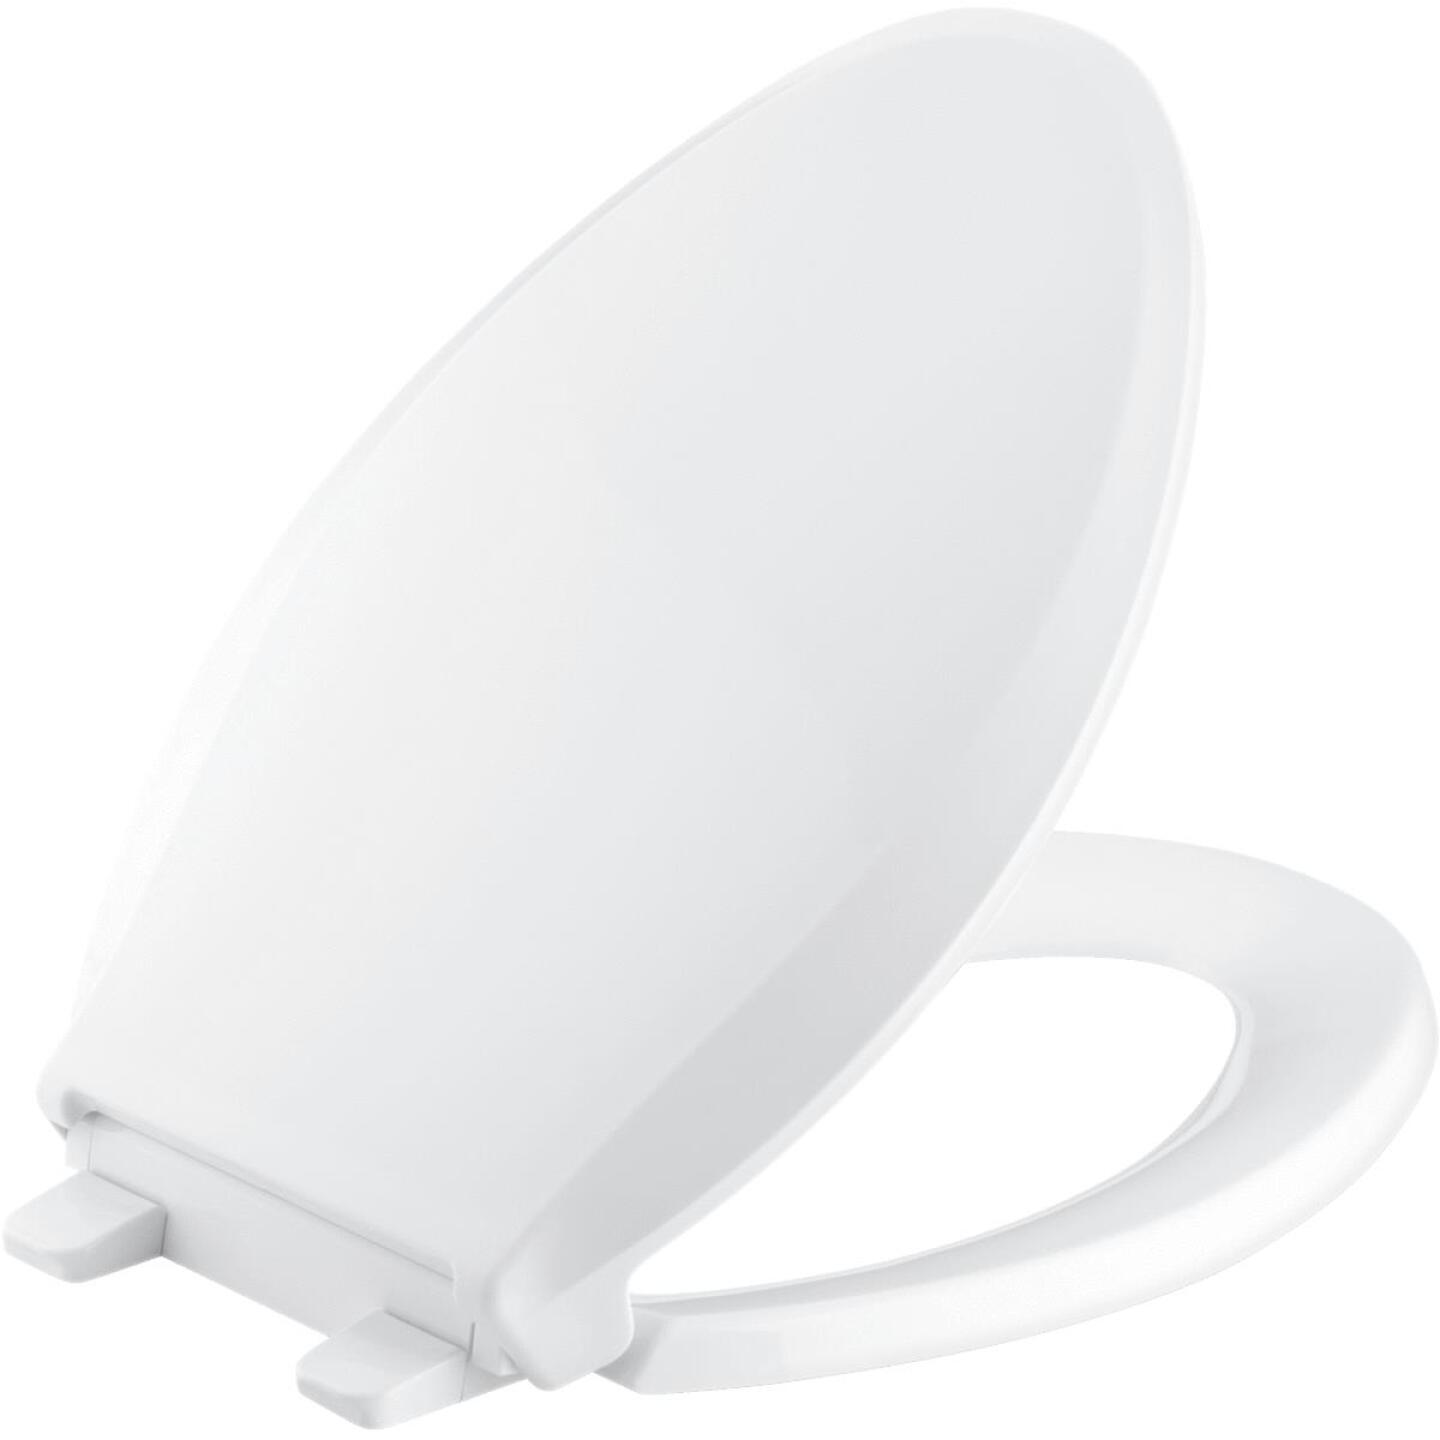 Kohler Cachet Quiet-Close Elongated Closed Front White Plastic Toilet Seat w/Grip-Tight Bumpers Image 1